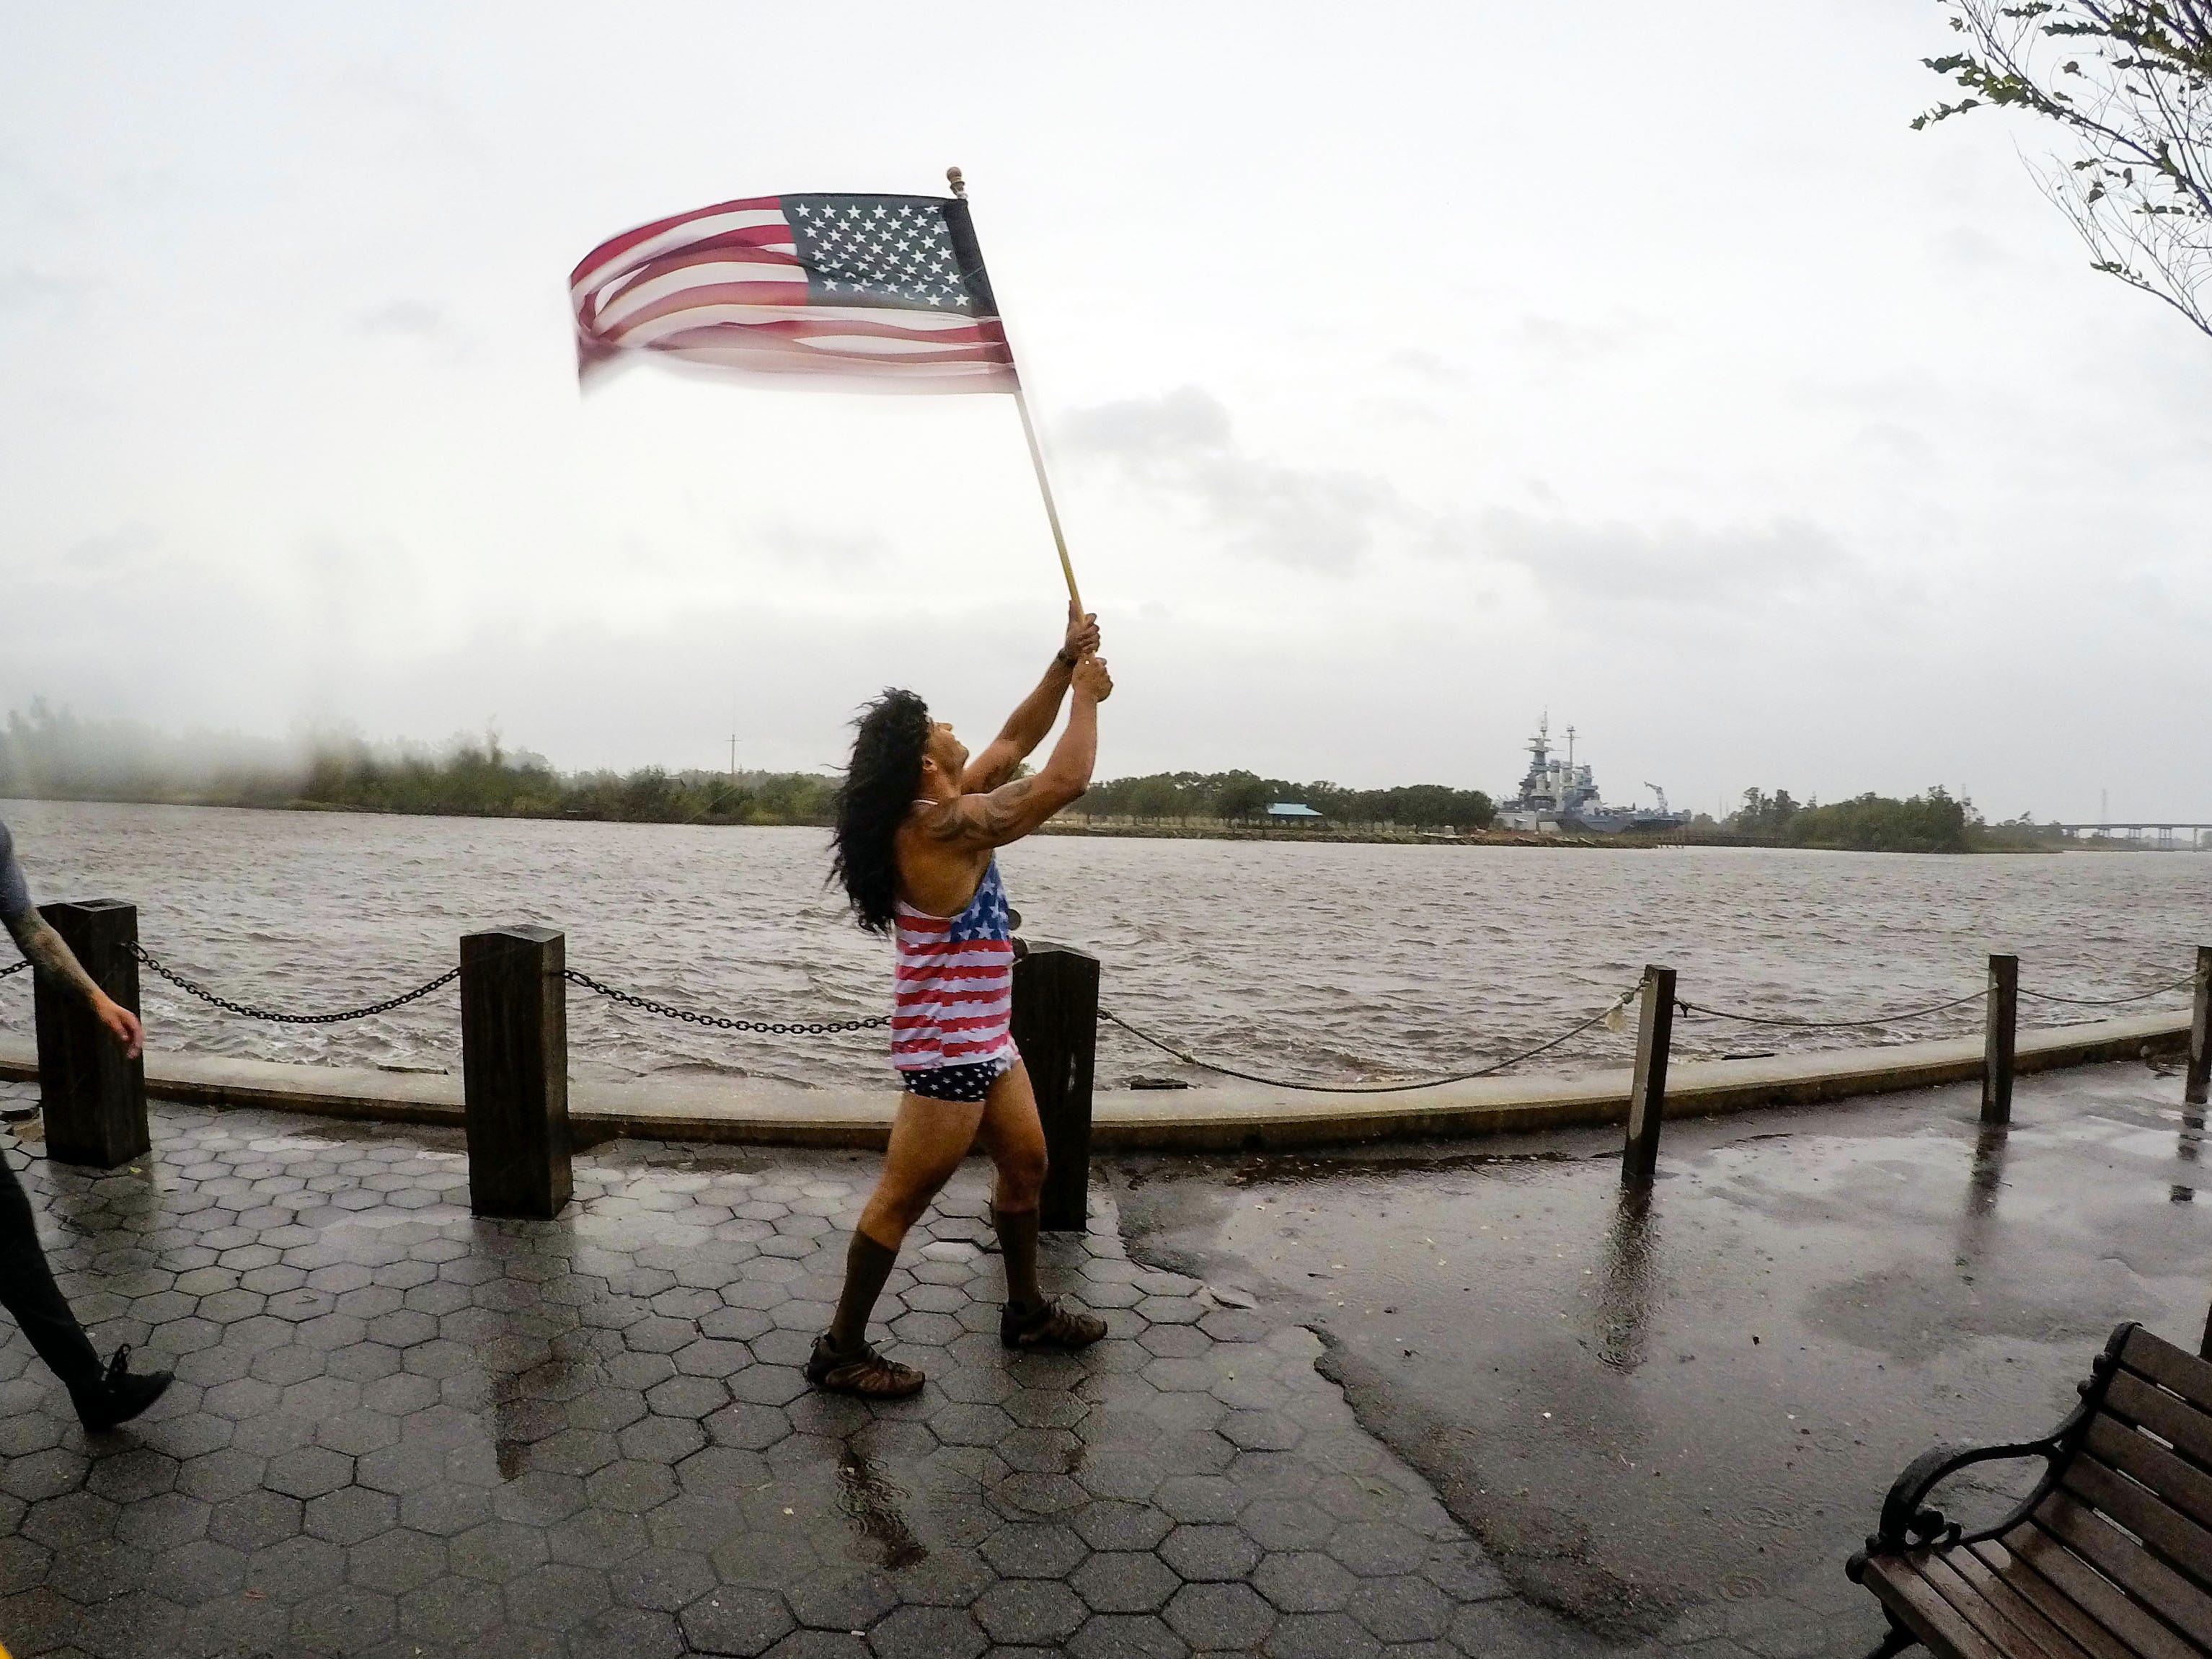 Jeff Egyp carries a United States flag in windy conditions along the Cape Fear River in Wilmington, N.C.